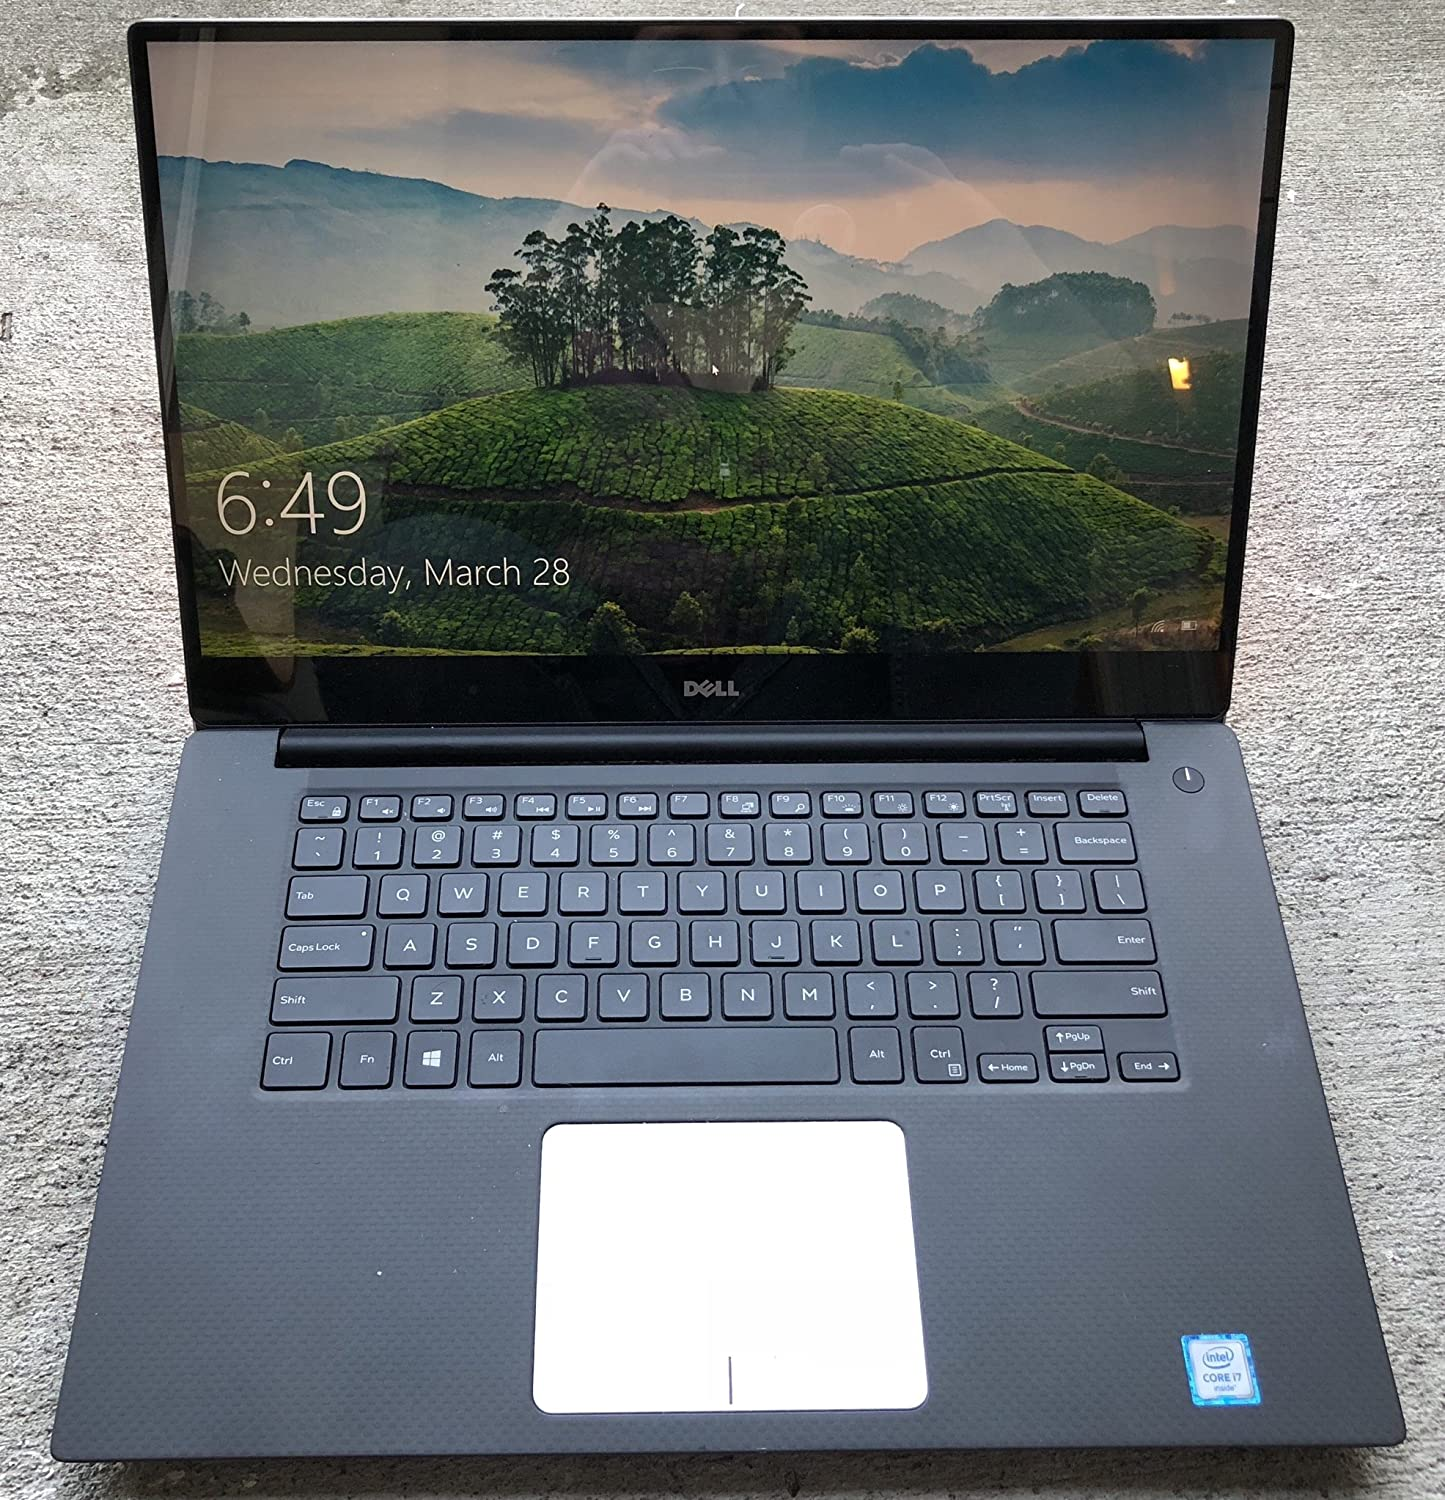 "Dell XPS 15 9550 Laptop 15.6"" 4K UHD (3840x2160) InfinityEdge touch Screen, Intel Skylake i7-6700HQ Quad Core, 1TB SSD, 32GB Ram, NVIDIA GTX 960M 2GB Win 10 (Renewed)"